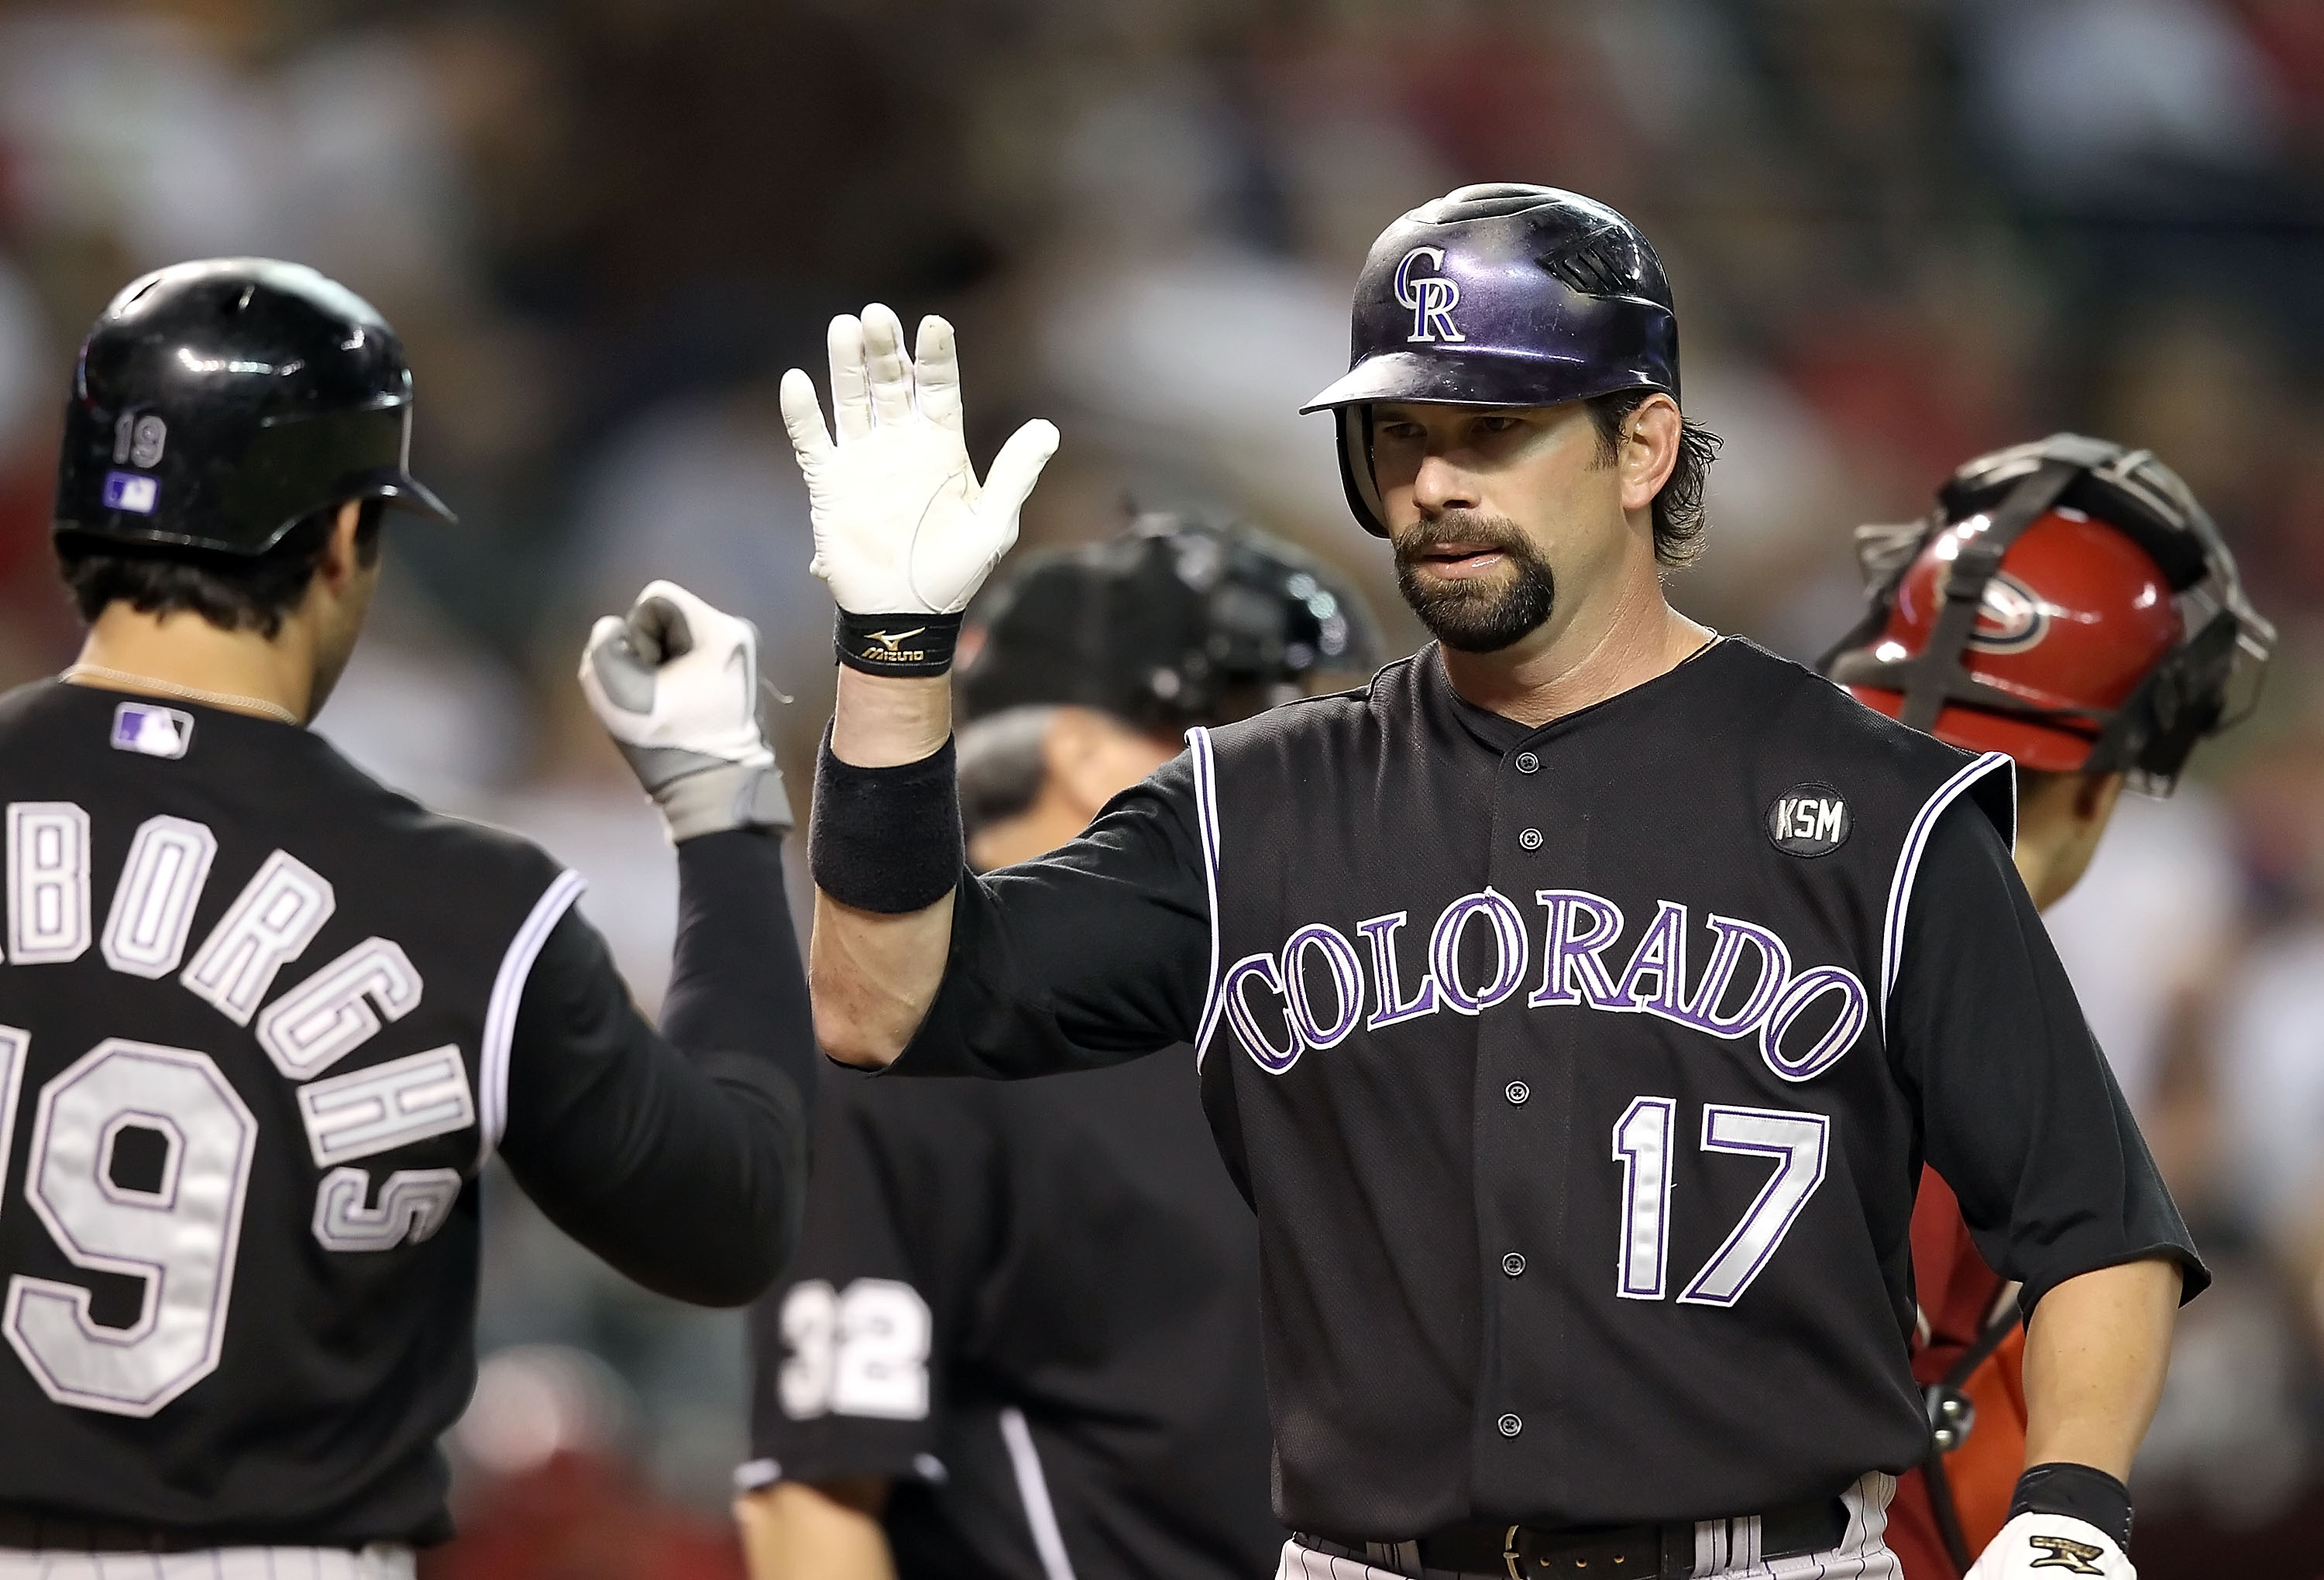 PHOENIX - SEPTEMBER 22:  Todd Helton #17 of the Colorado Rockies high fives teammate Ryan Spilborghs #16 after Helton hit a solo home run against the Arizona Diamondbacks during the first inning of the Major League Baseball game at Chase Field on Septembe